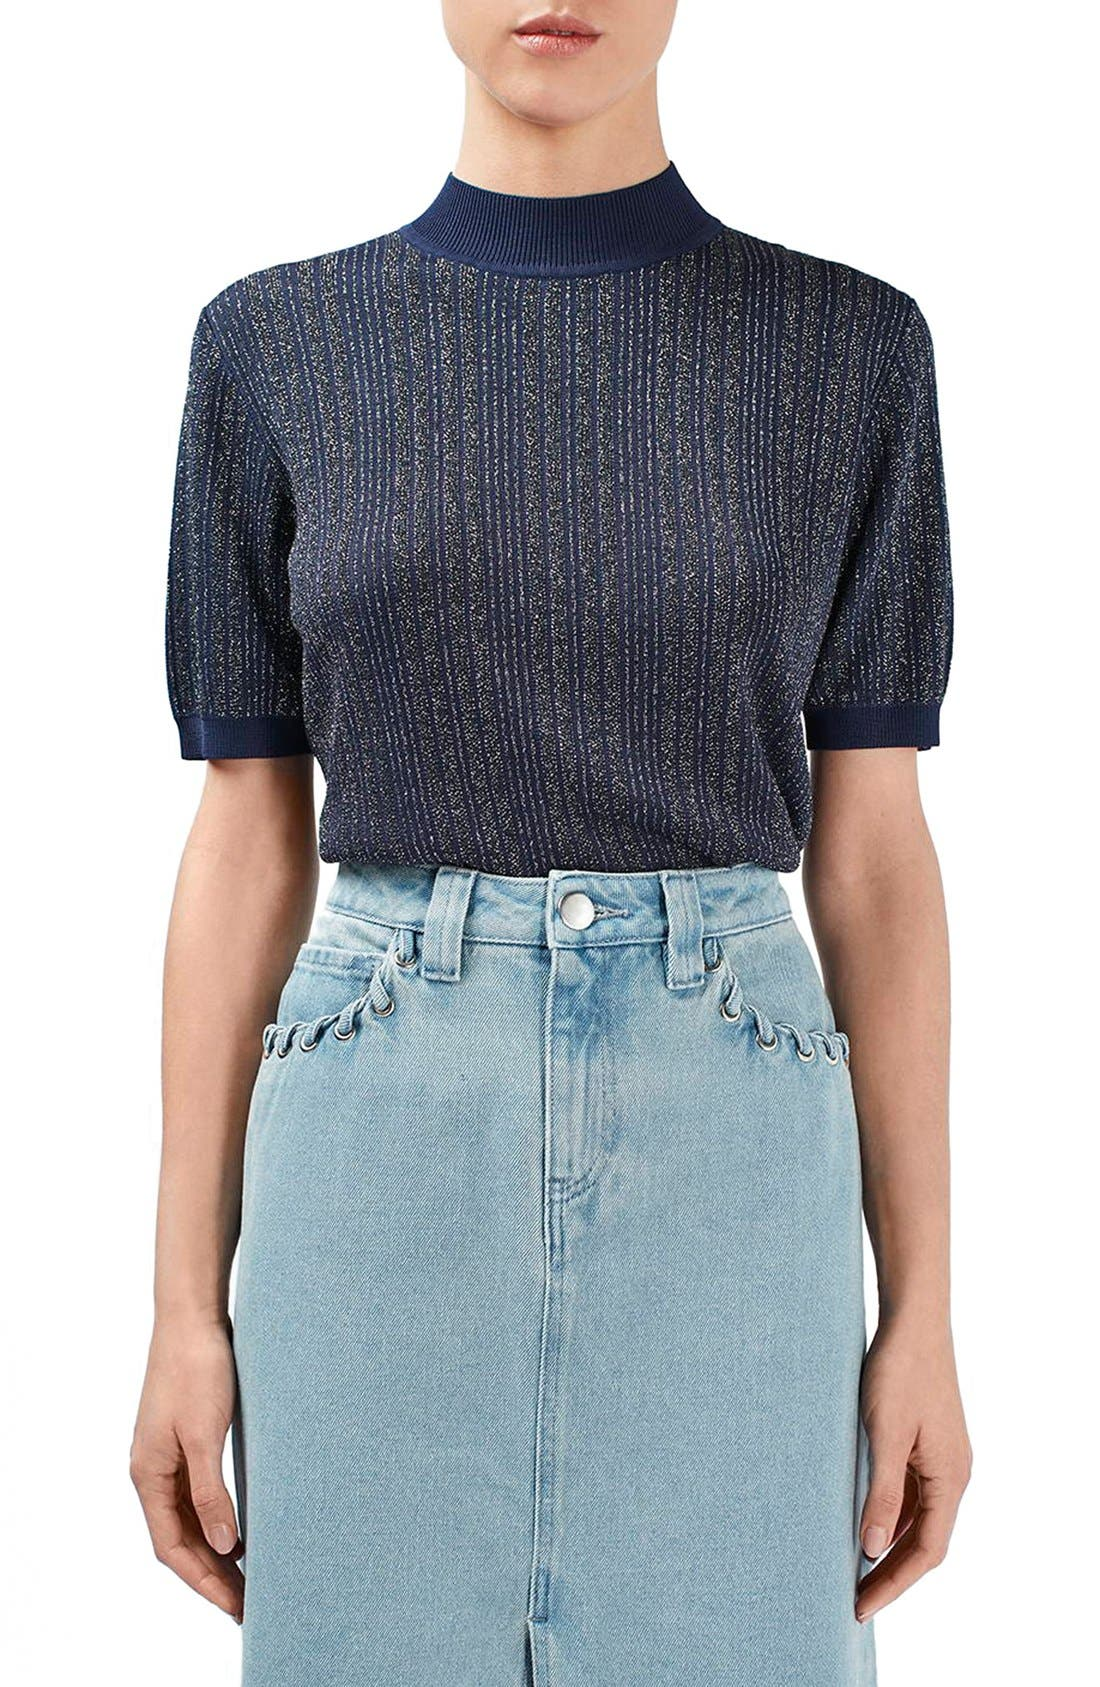 Main Image - Topshop Unique 'Lamont' Short Sleeve Metallic Stripe Sweater